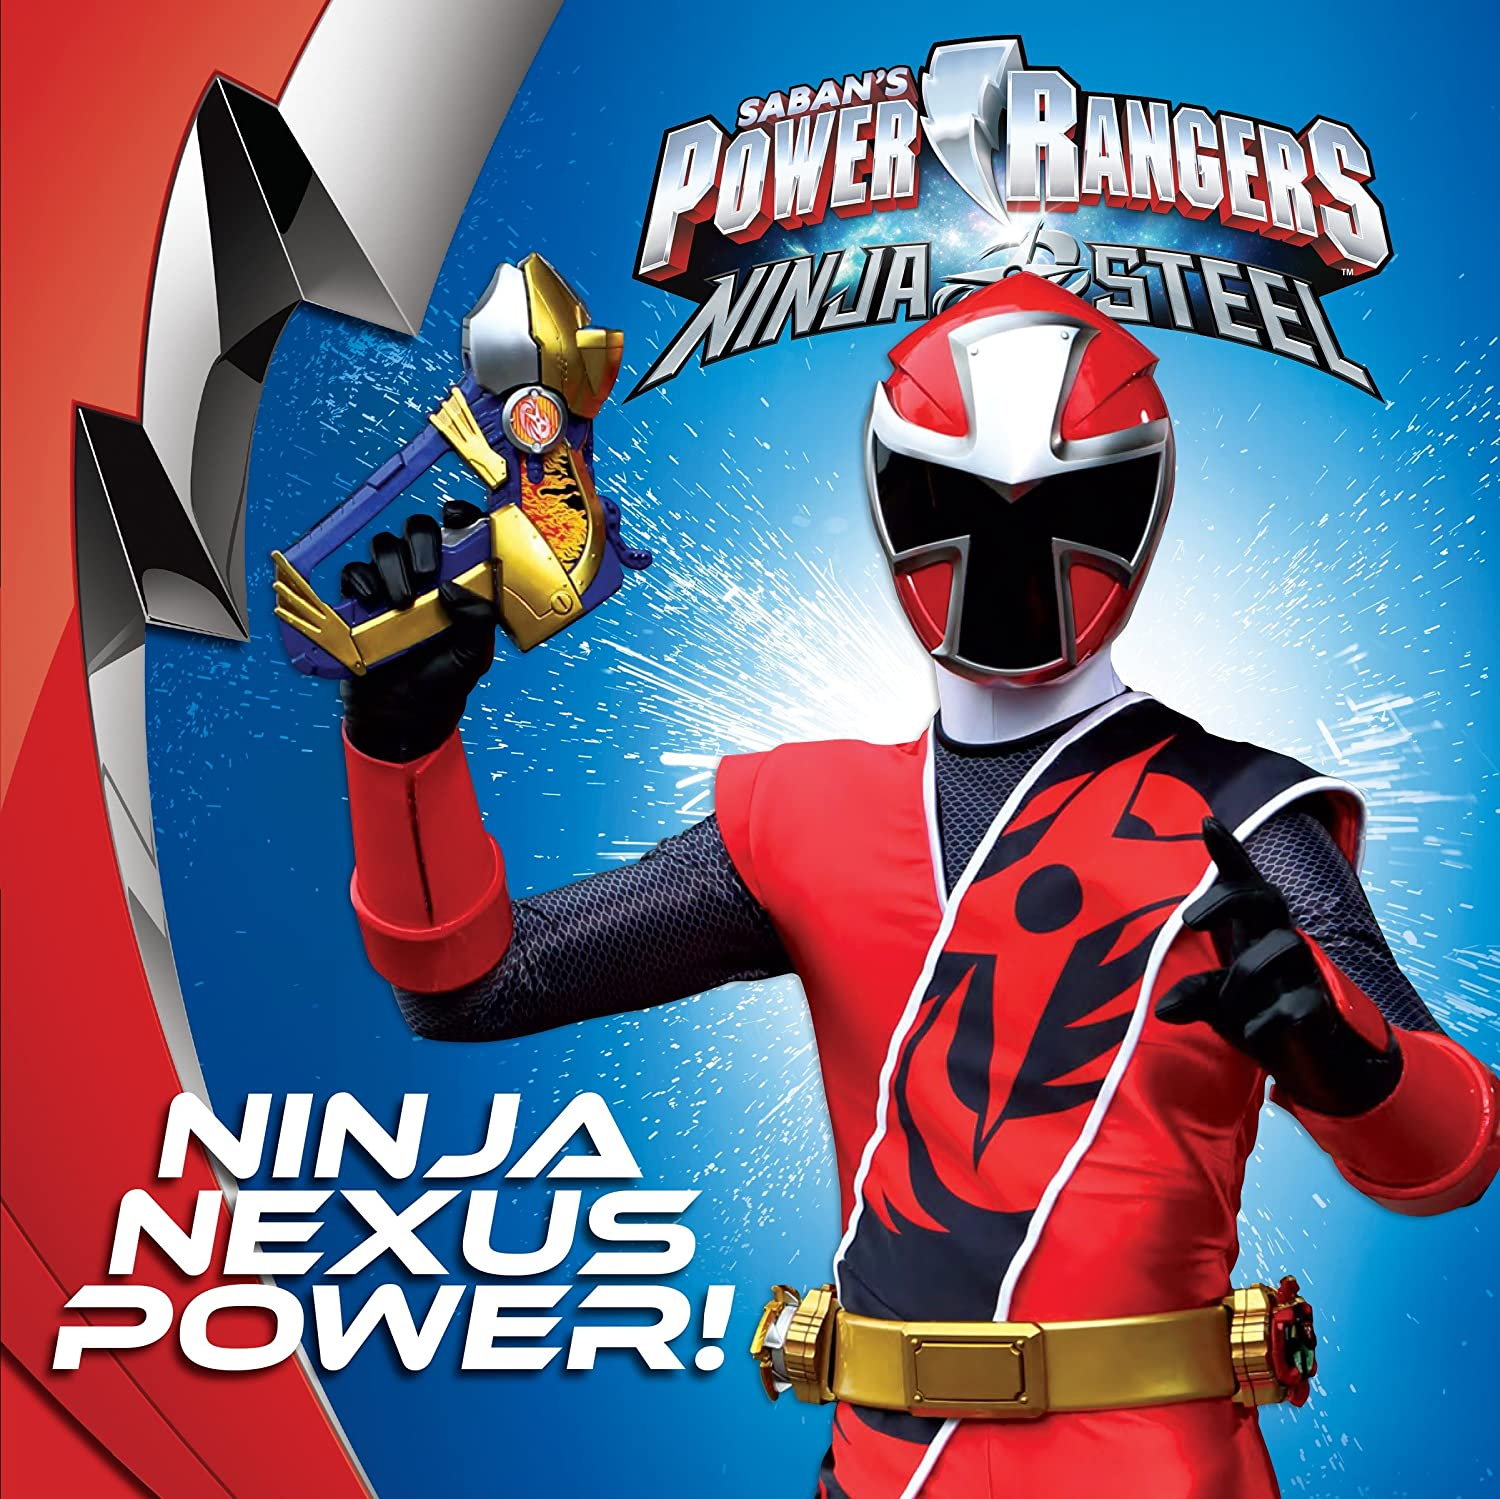 Amazon.com: Ninja Nexus Power! (Power Rangers) eBook: Sara ...